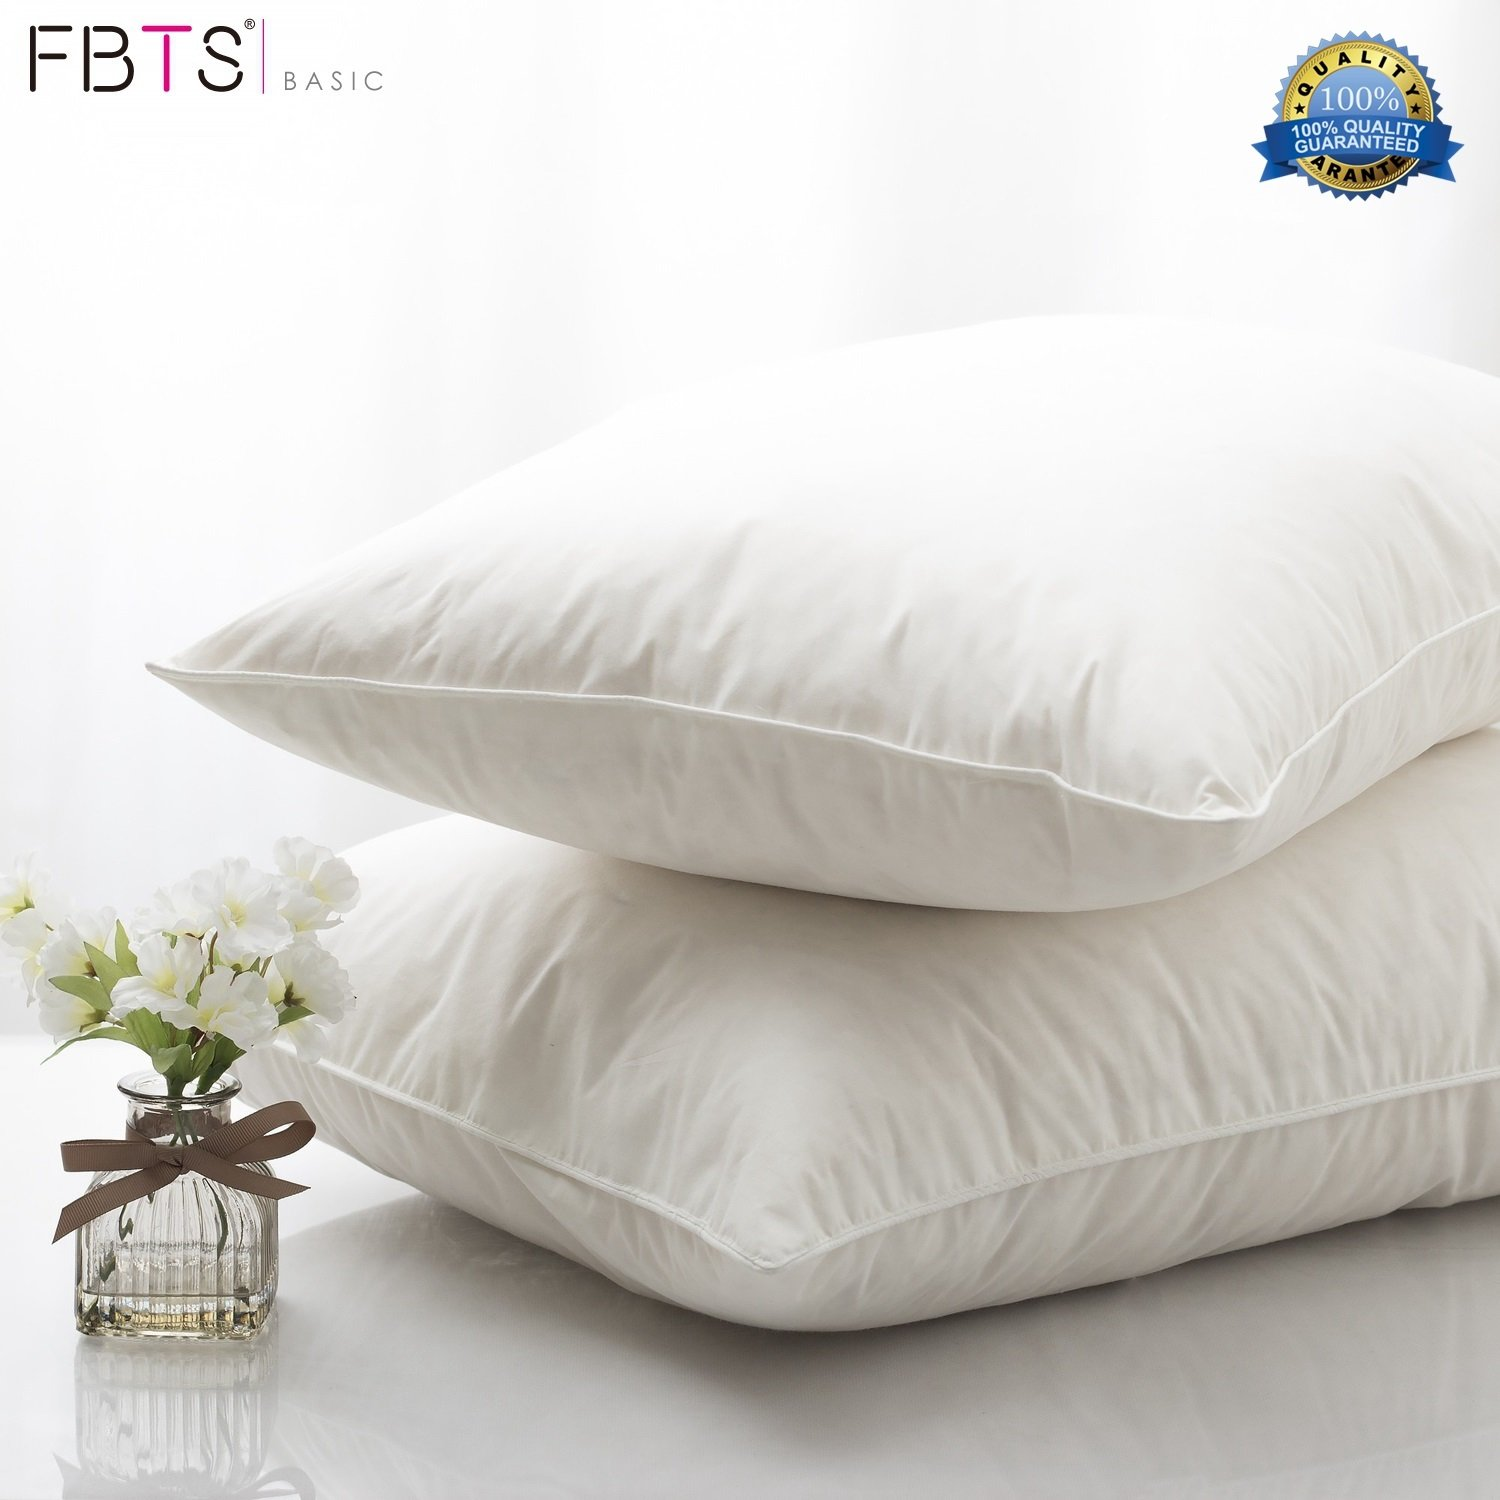 FBTS Basic 95% Feather 5% Down Pillow Insert 18 x 18 Square Sham Stuffer Premium Hypoallergenic Form Cotton Down Proof Shell Decorative Cushion Sofa and Bed Pillows Fabritones FTIN001E